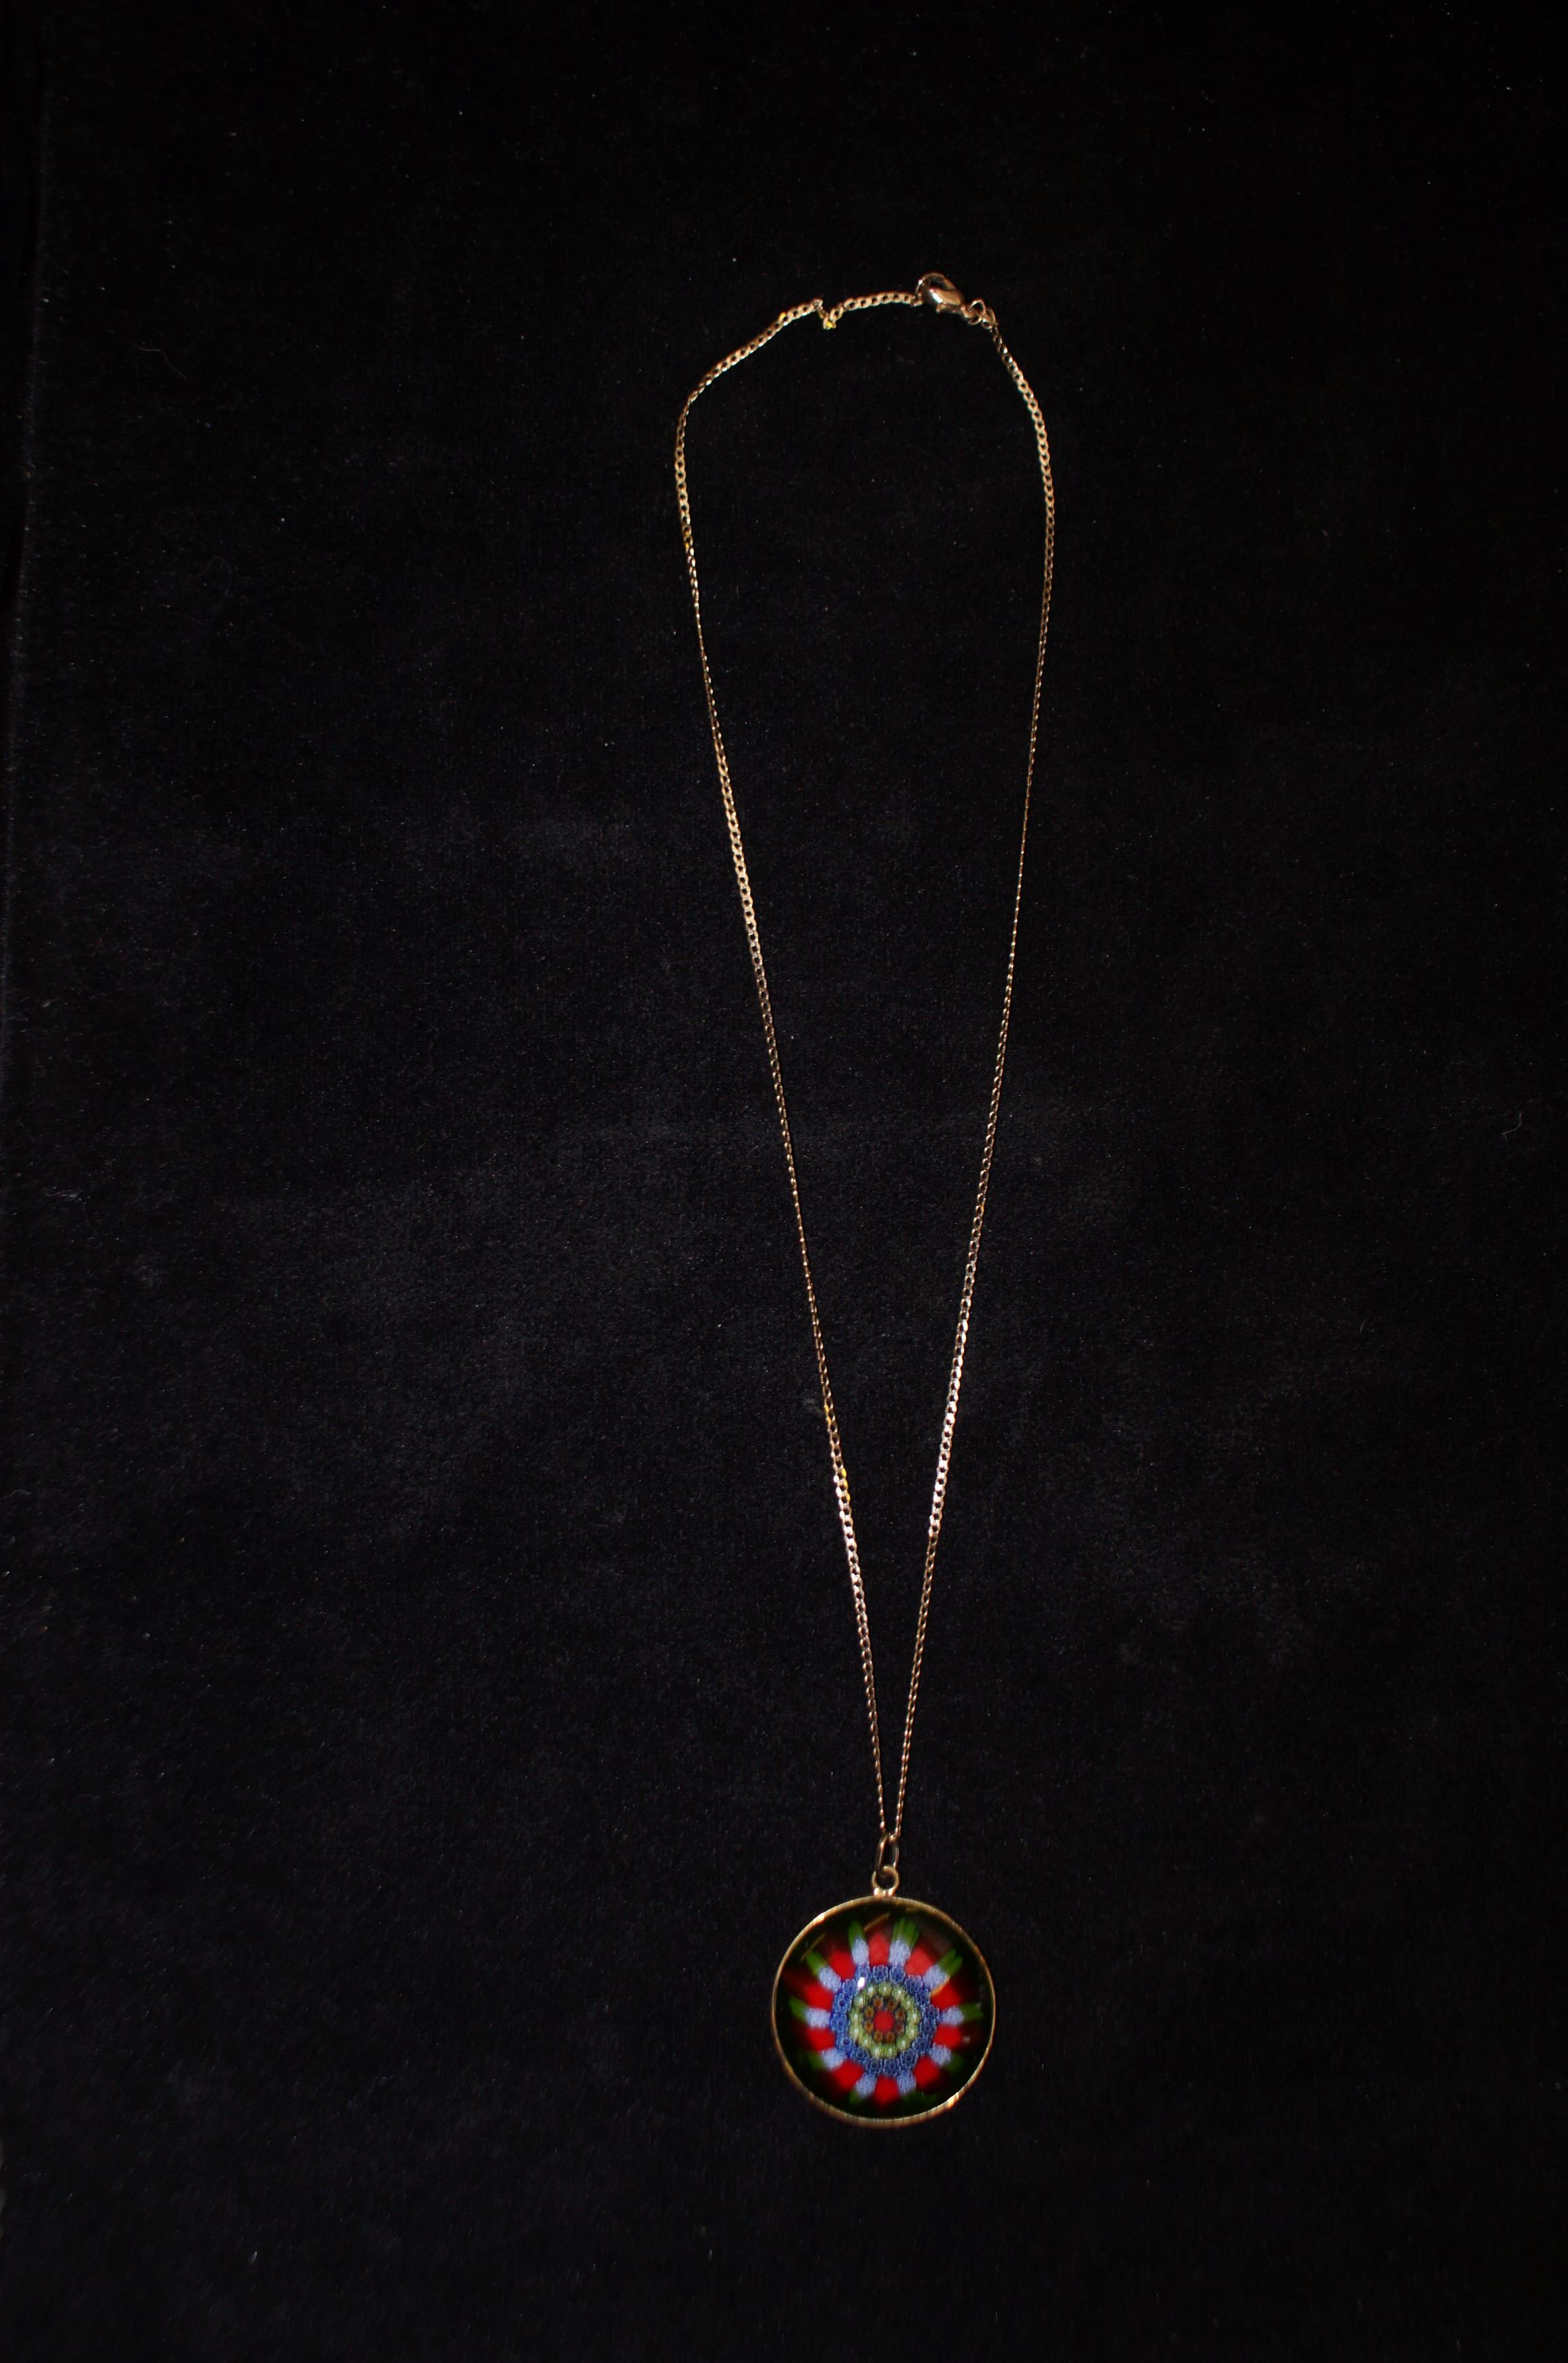 9ct Gold Murano Necklace - 10g - Image 2 of 2